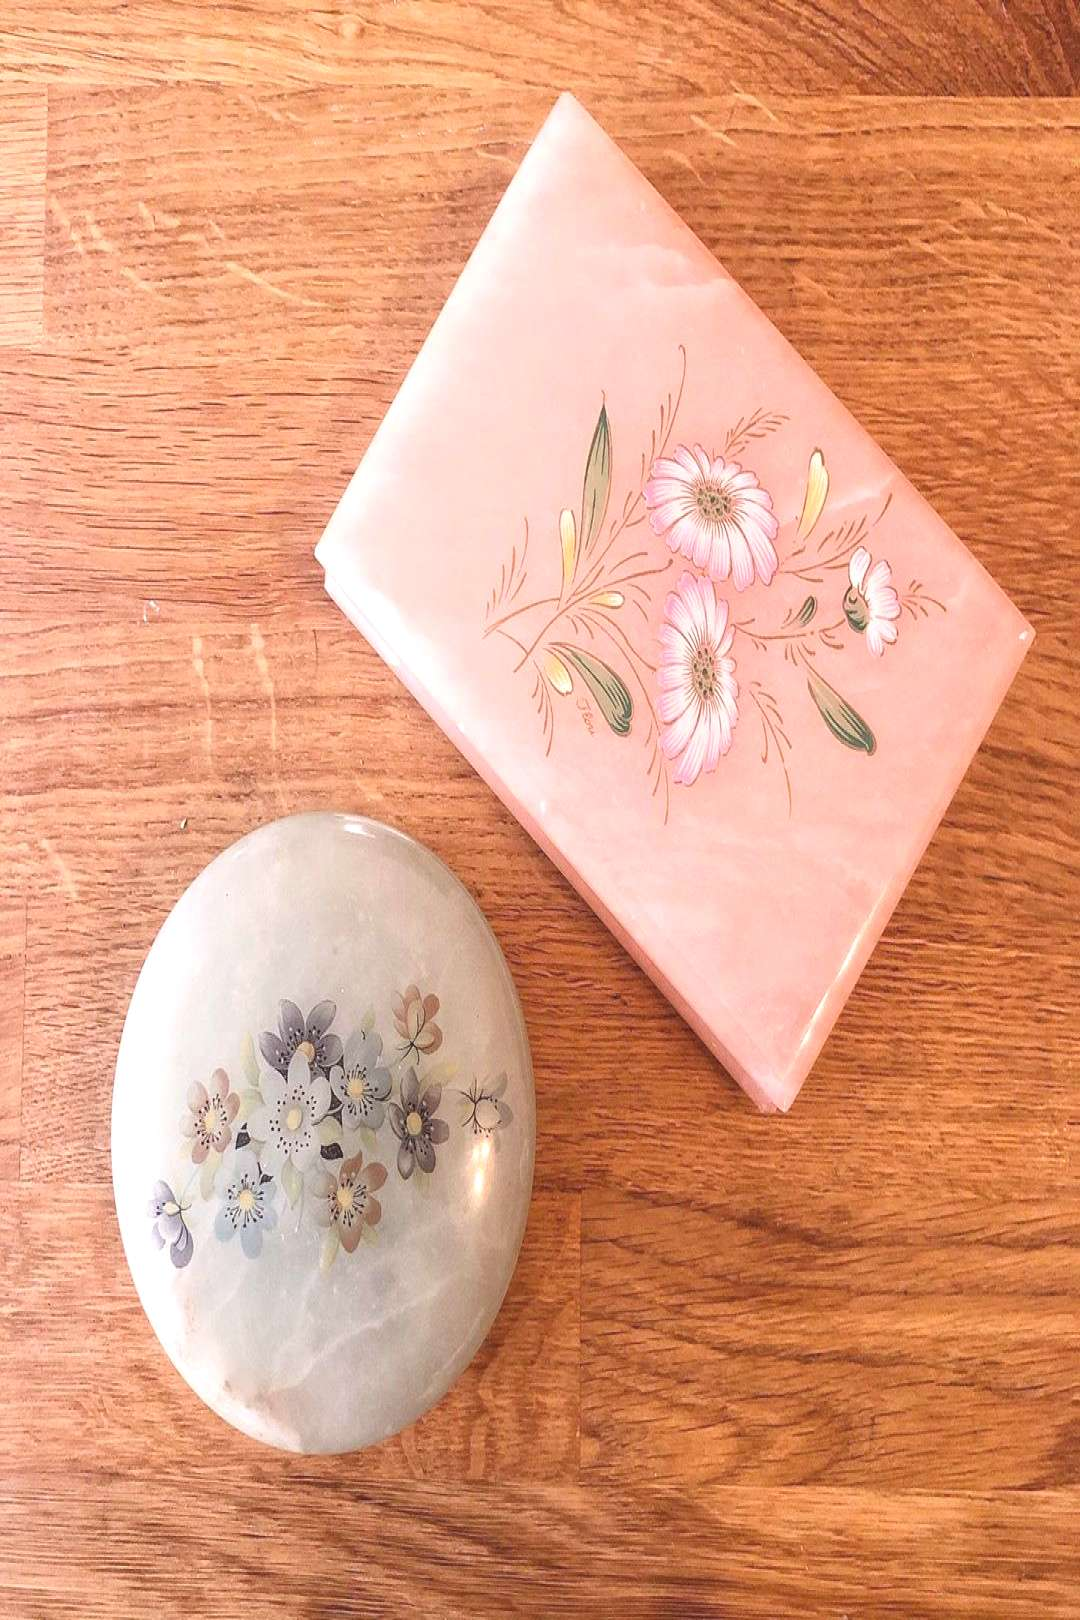 dreamy Italian alabaster hand-painted 1950s hinged boxes to upgra